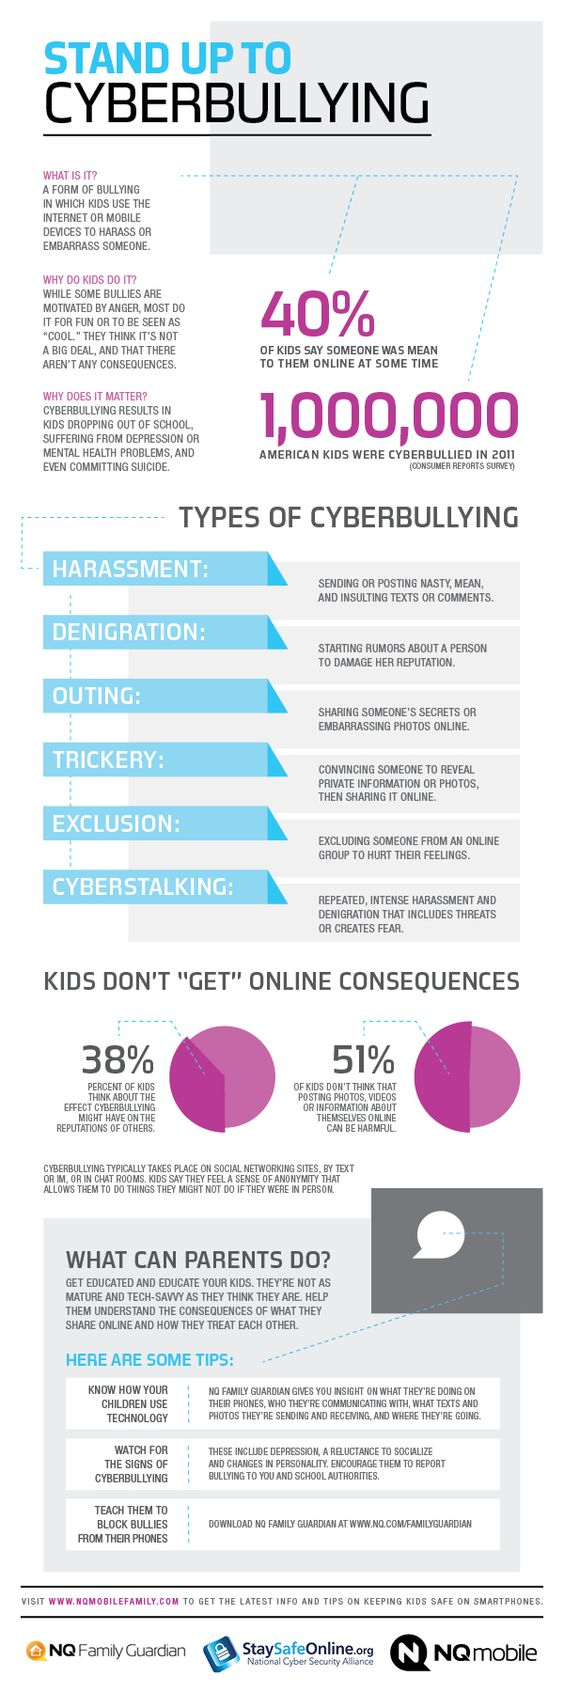 Infographic about cyberbullying; definition and types of cyberbullying, tips for students and parents: